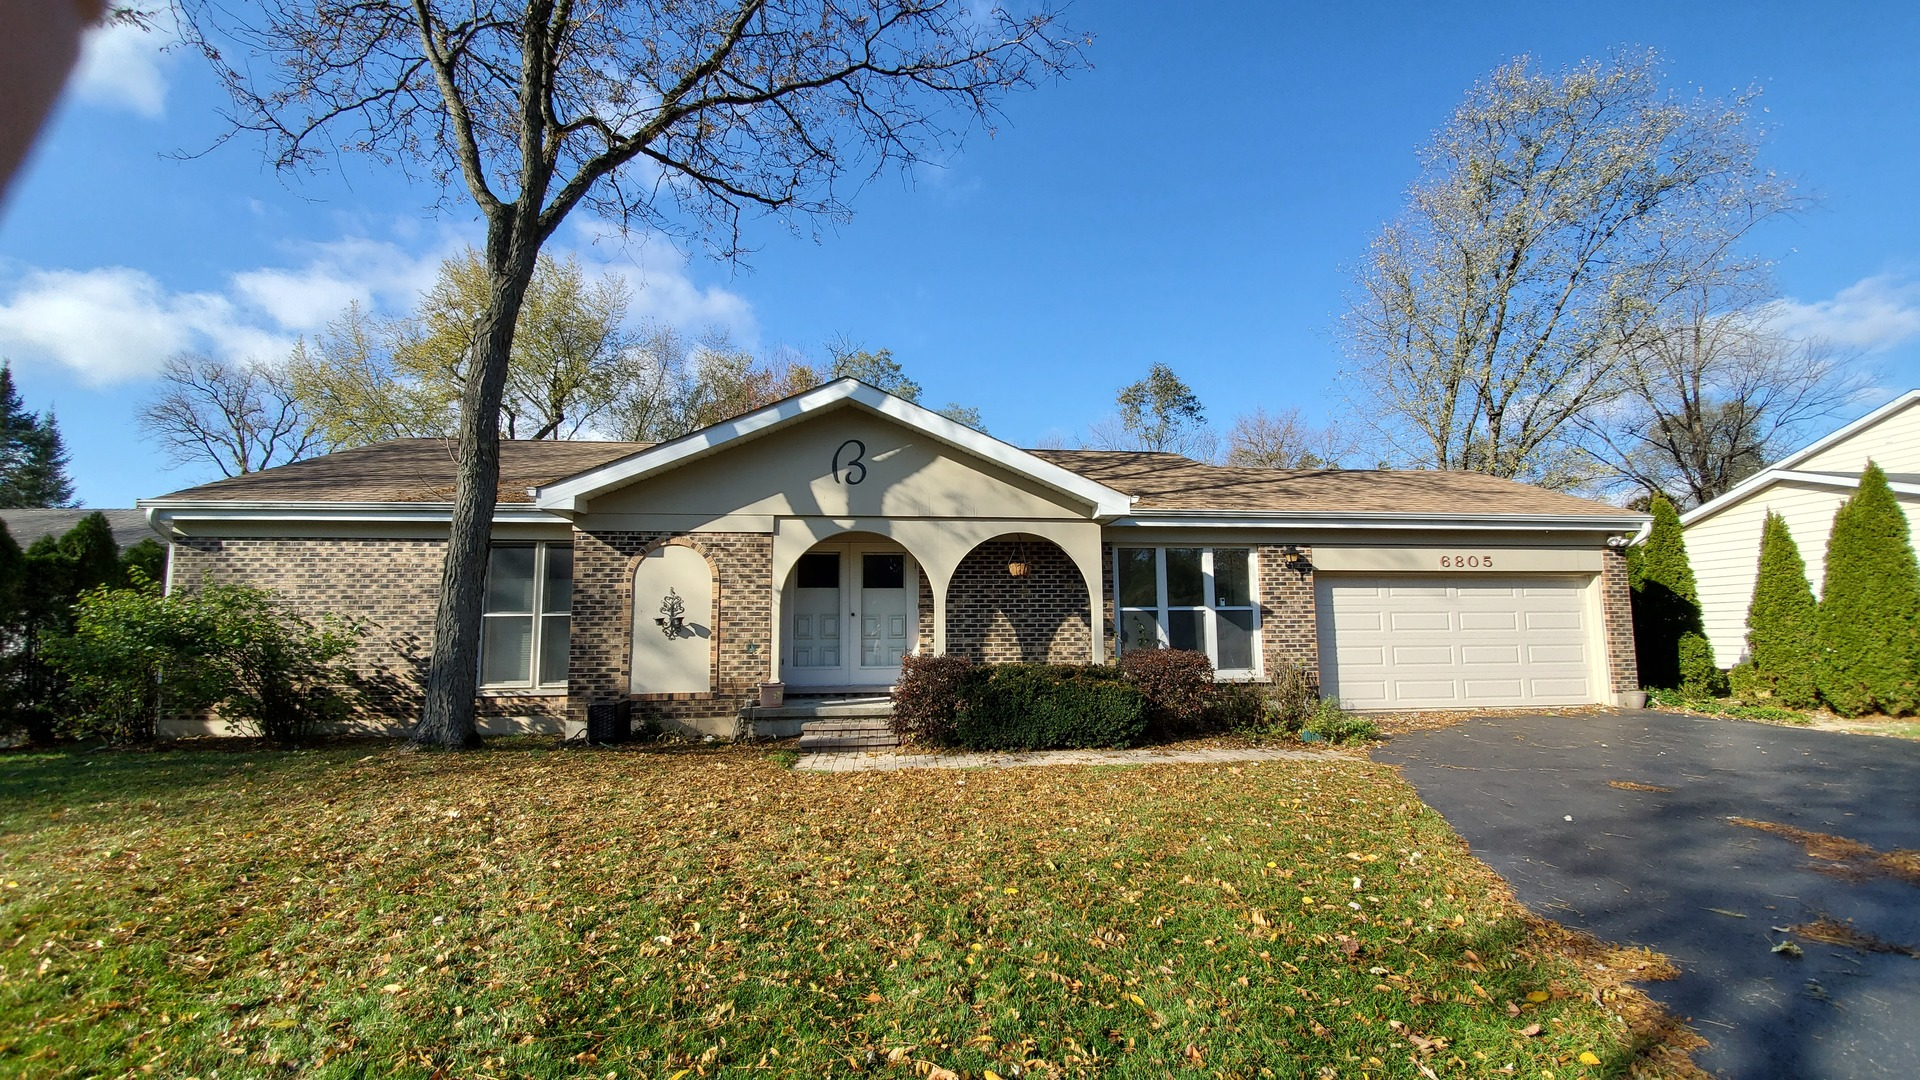 6805 Huntley Road, Crystal Lake, IL 60014